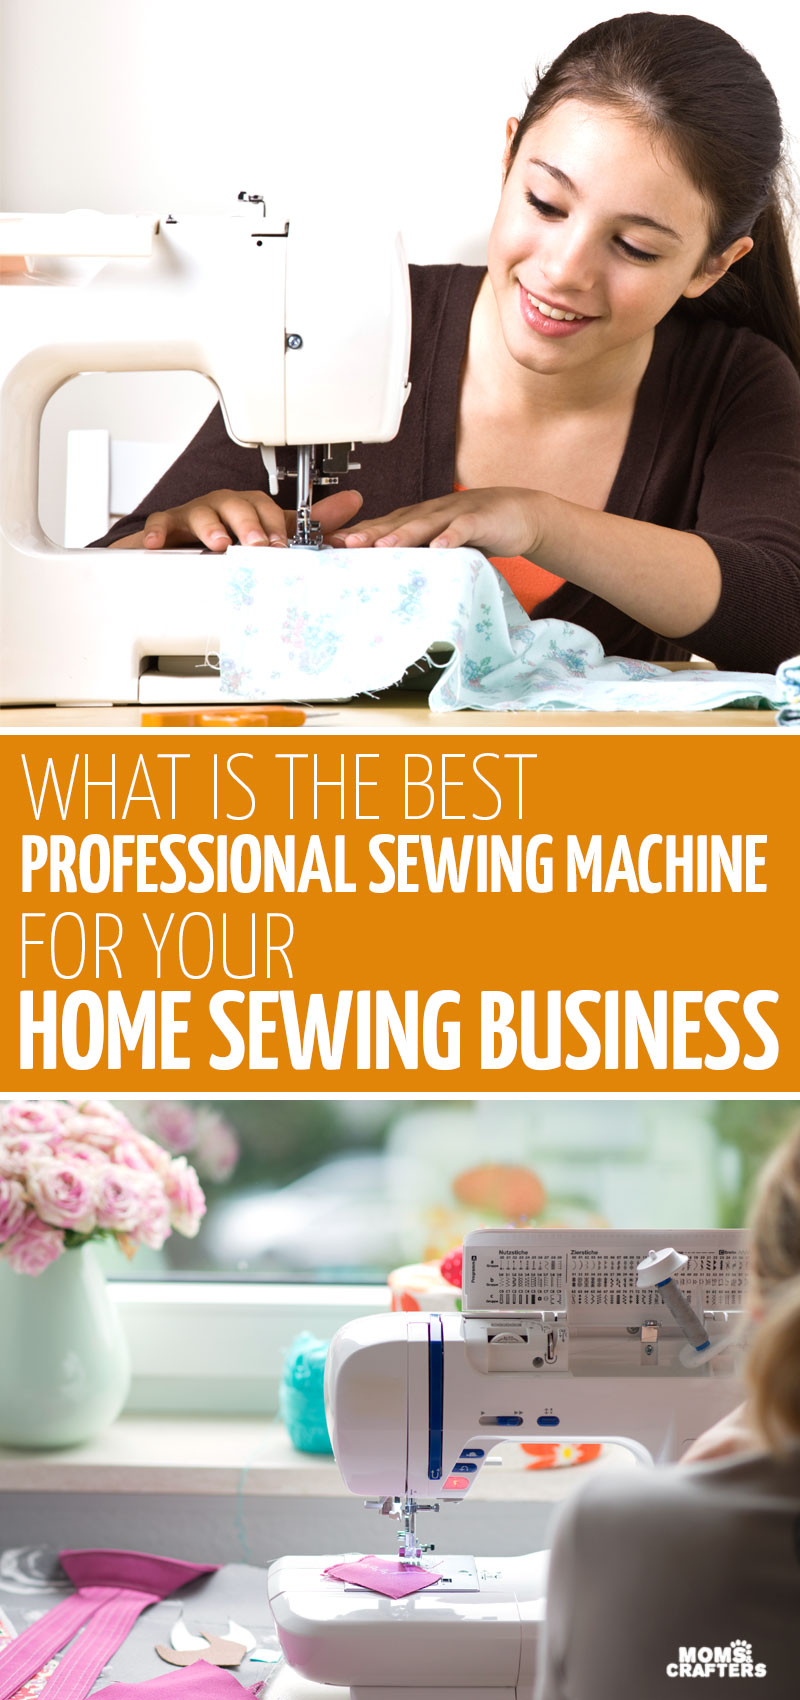 Click for my list of the best sewing machine for professionals - these top industrial and commercial sewing machine picks take you through sewing tips for setting up a home business